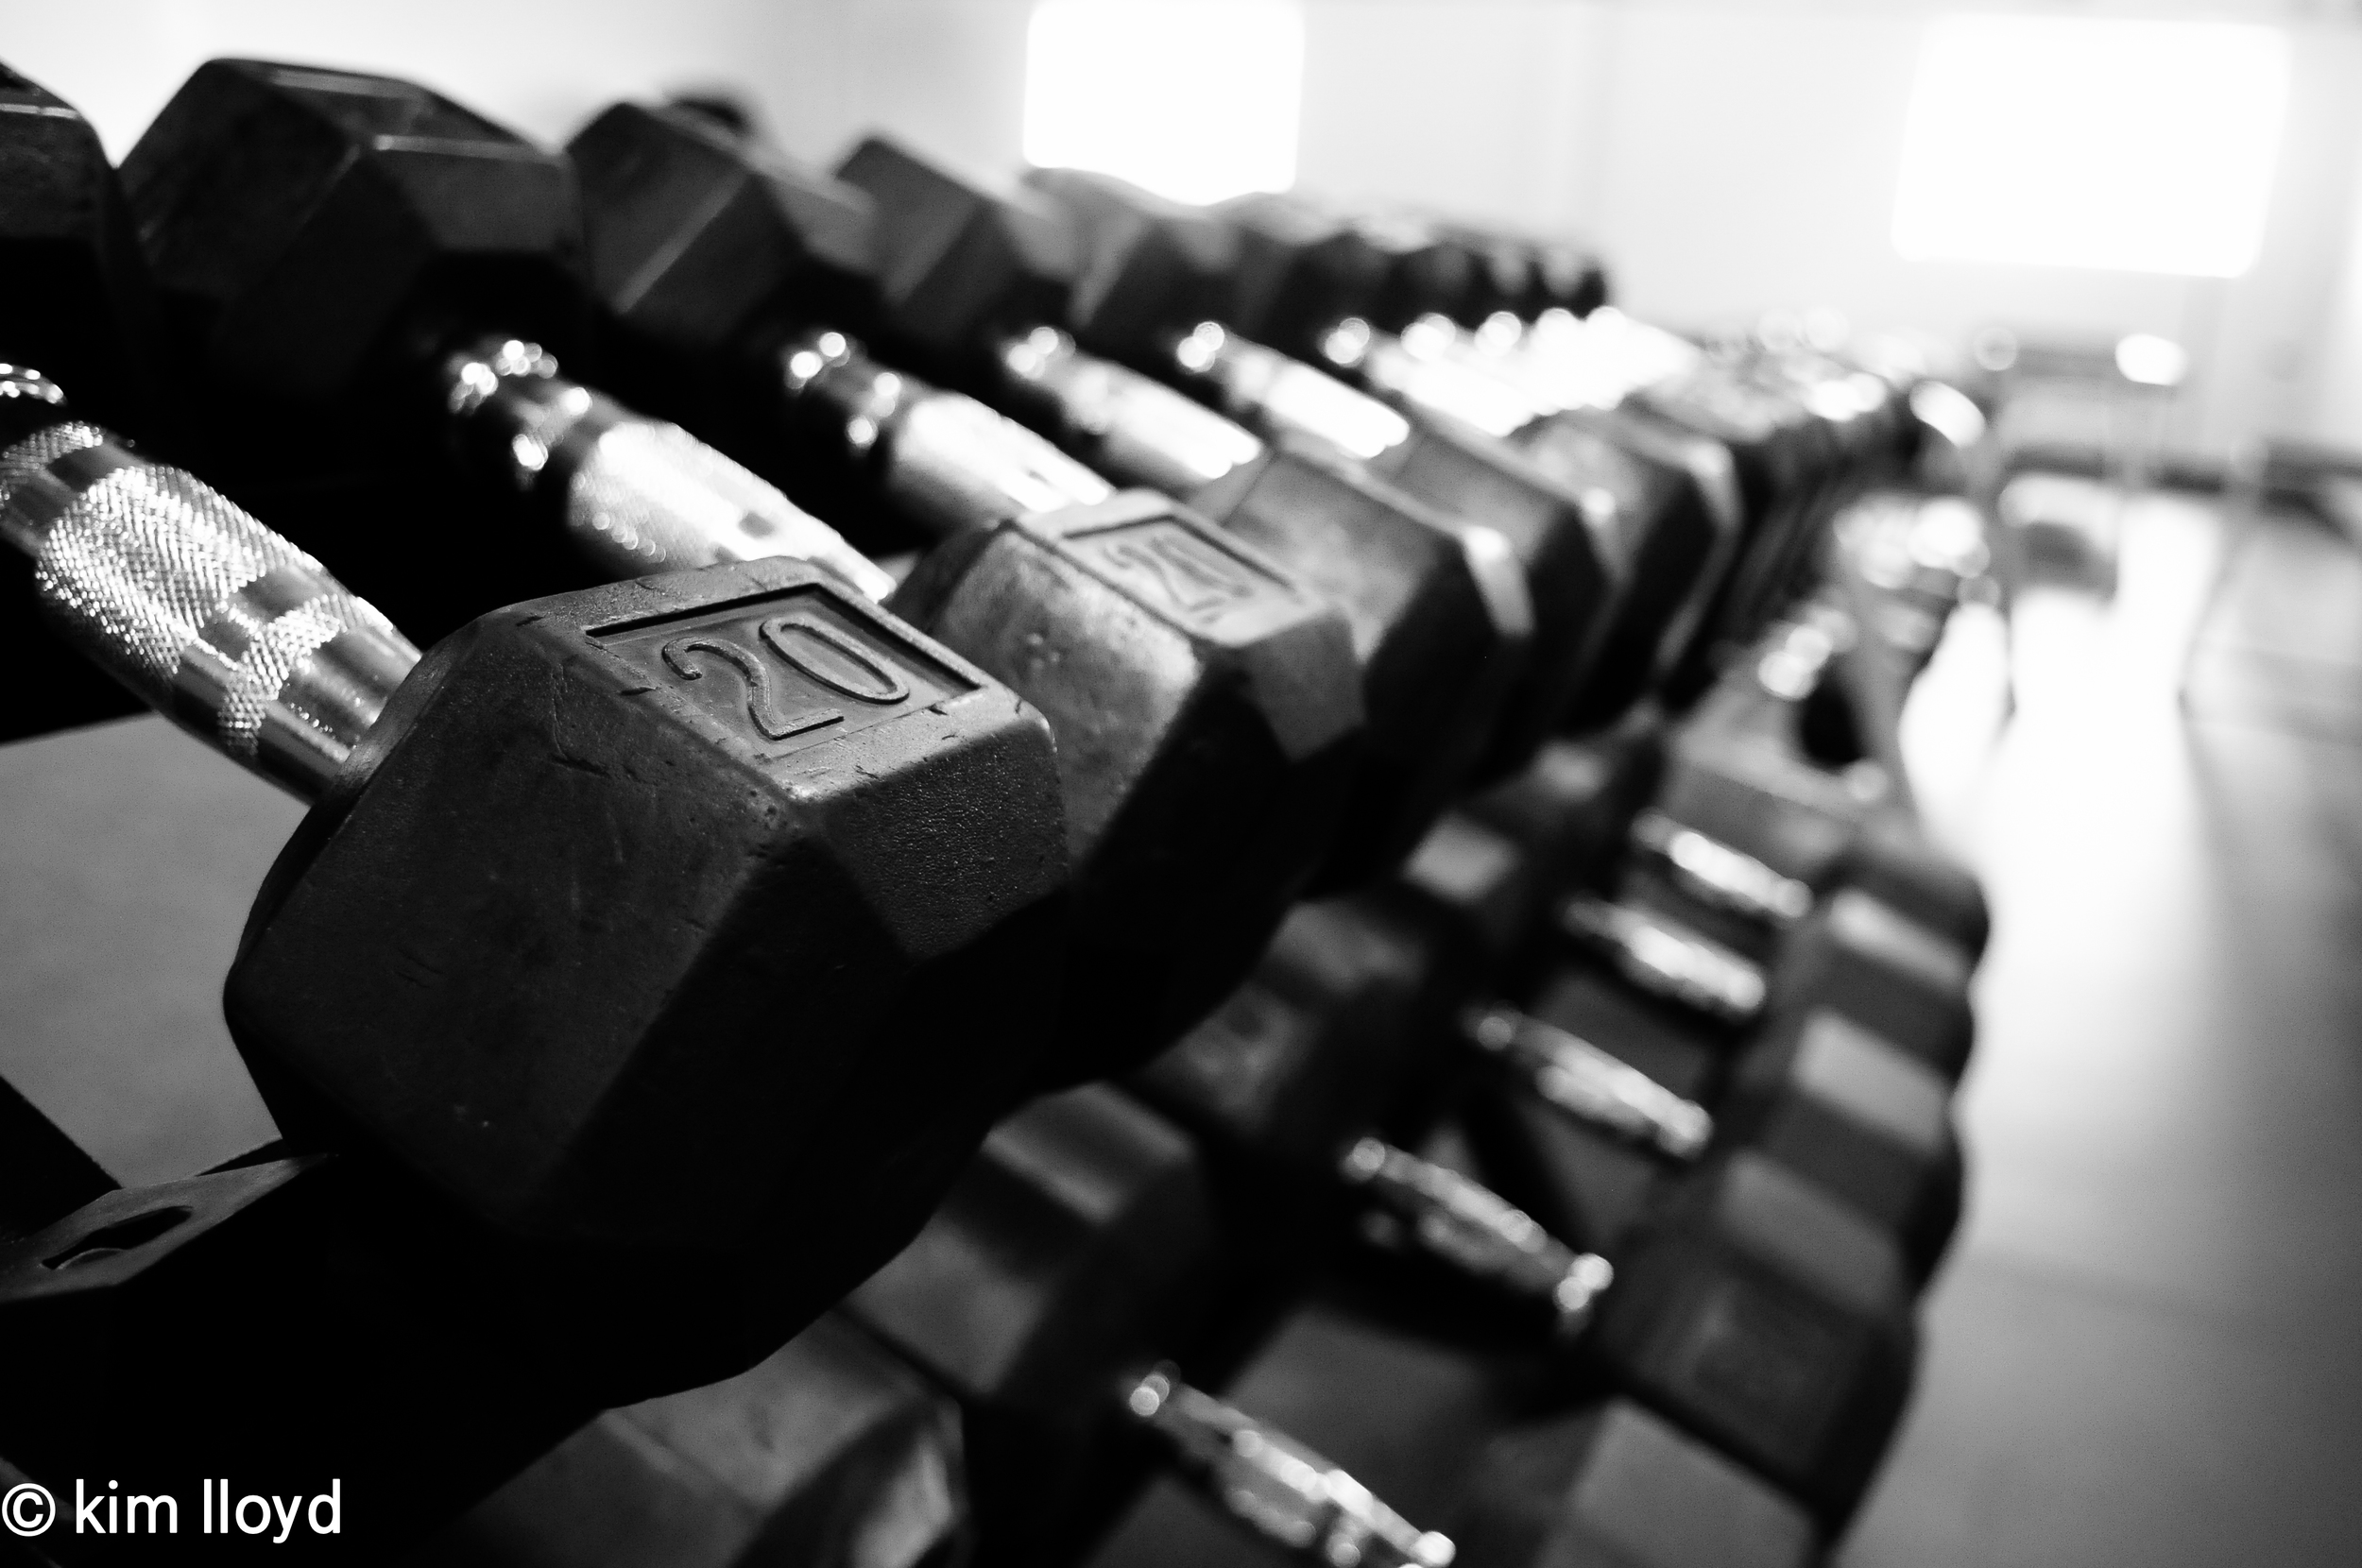 Dumbbells are happy living in their dumbbell rack. Gym etiquette 101 is to put them back in their happy place when you're done.